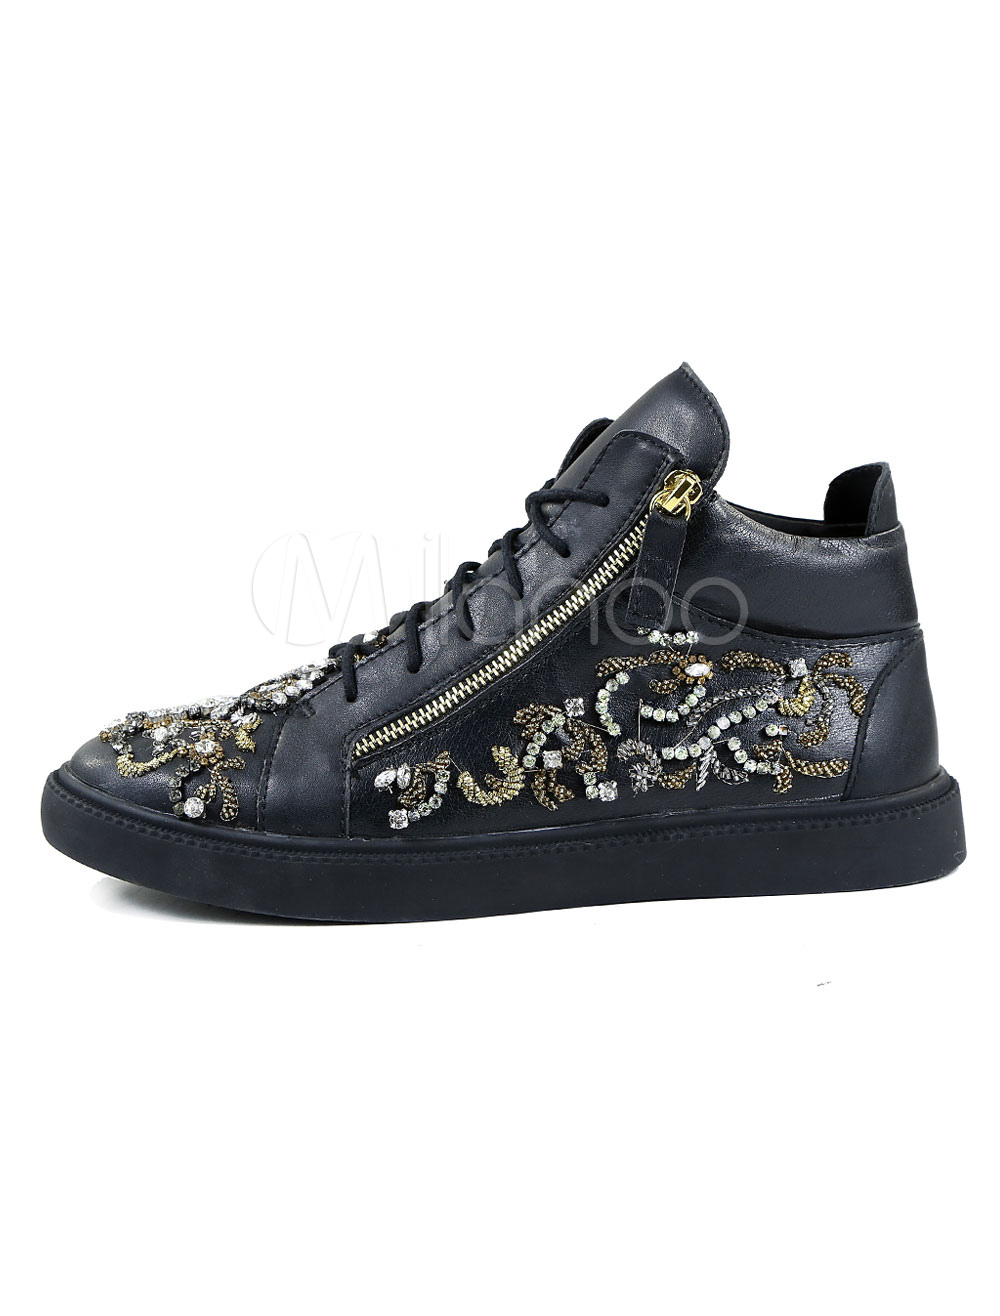 Black Men Sneakers High Top Skate Shoes Round Toe Rhinestones Lace Up Casual Shoes thumbnail